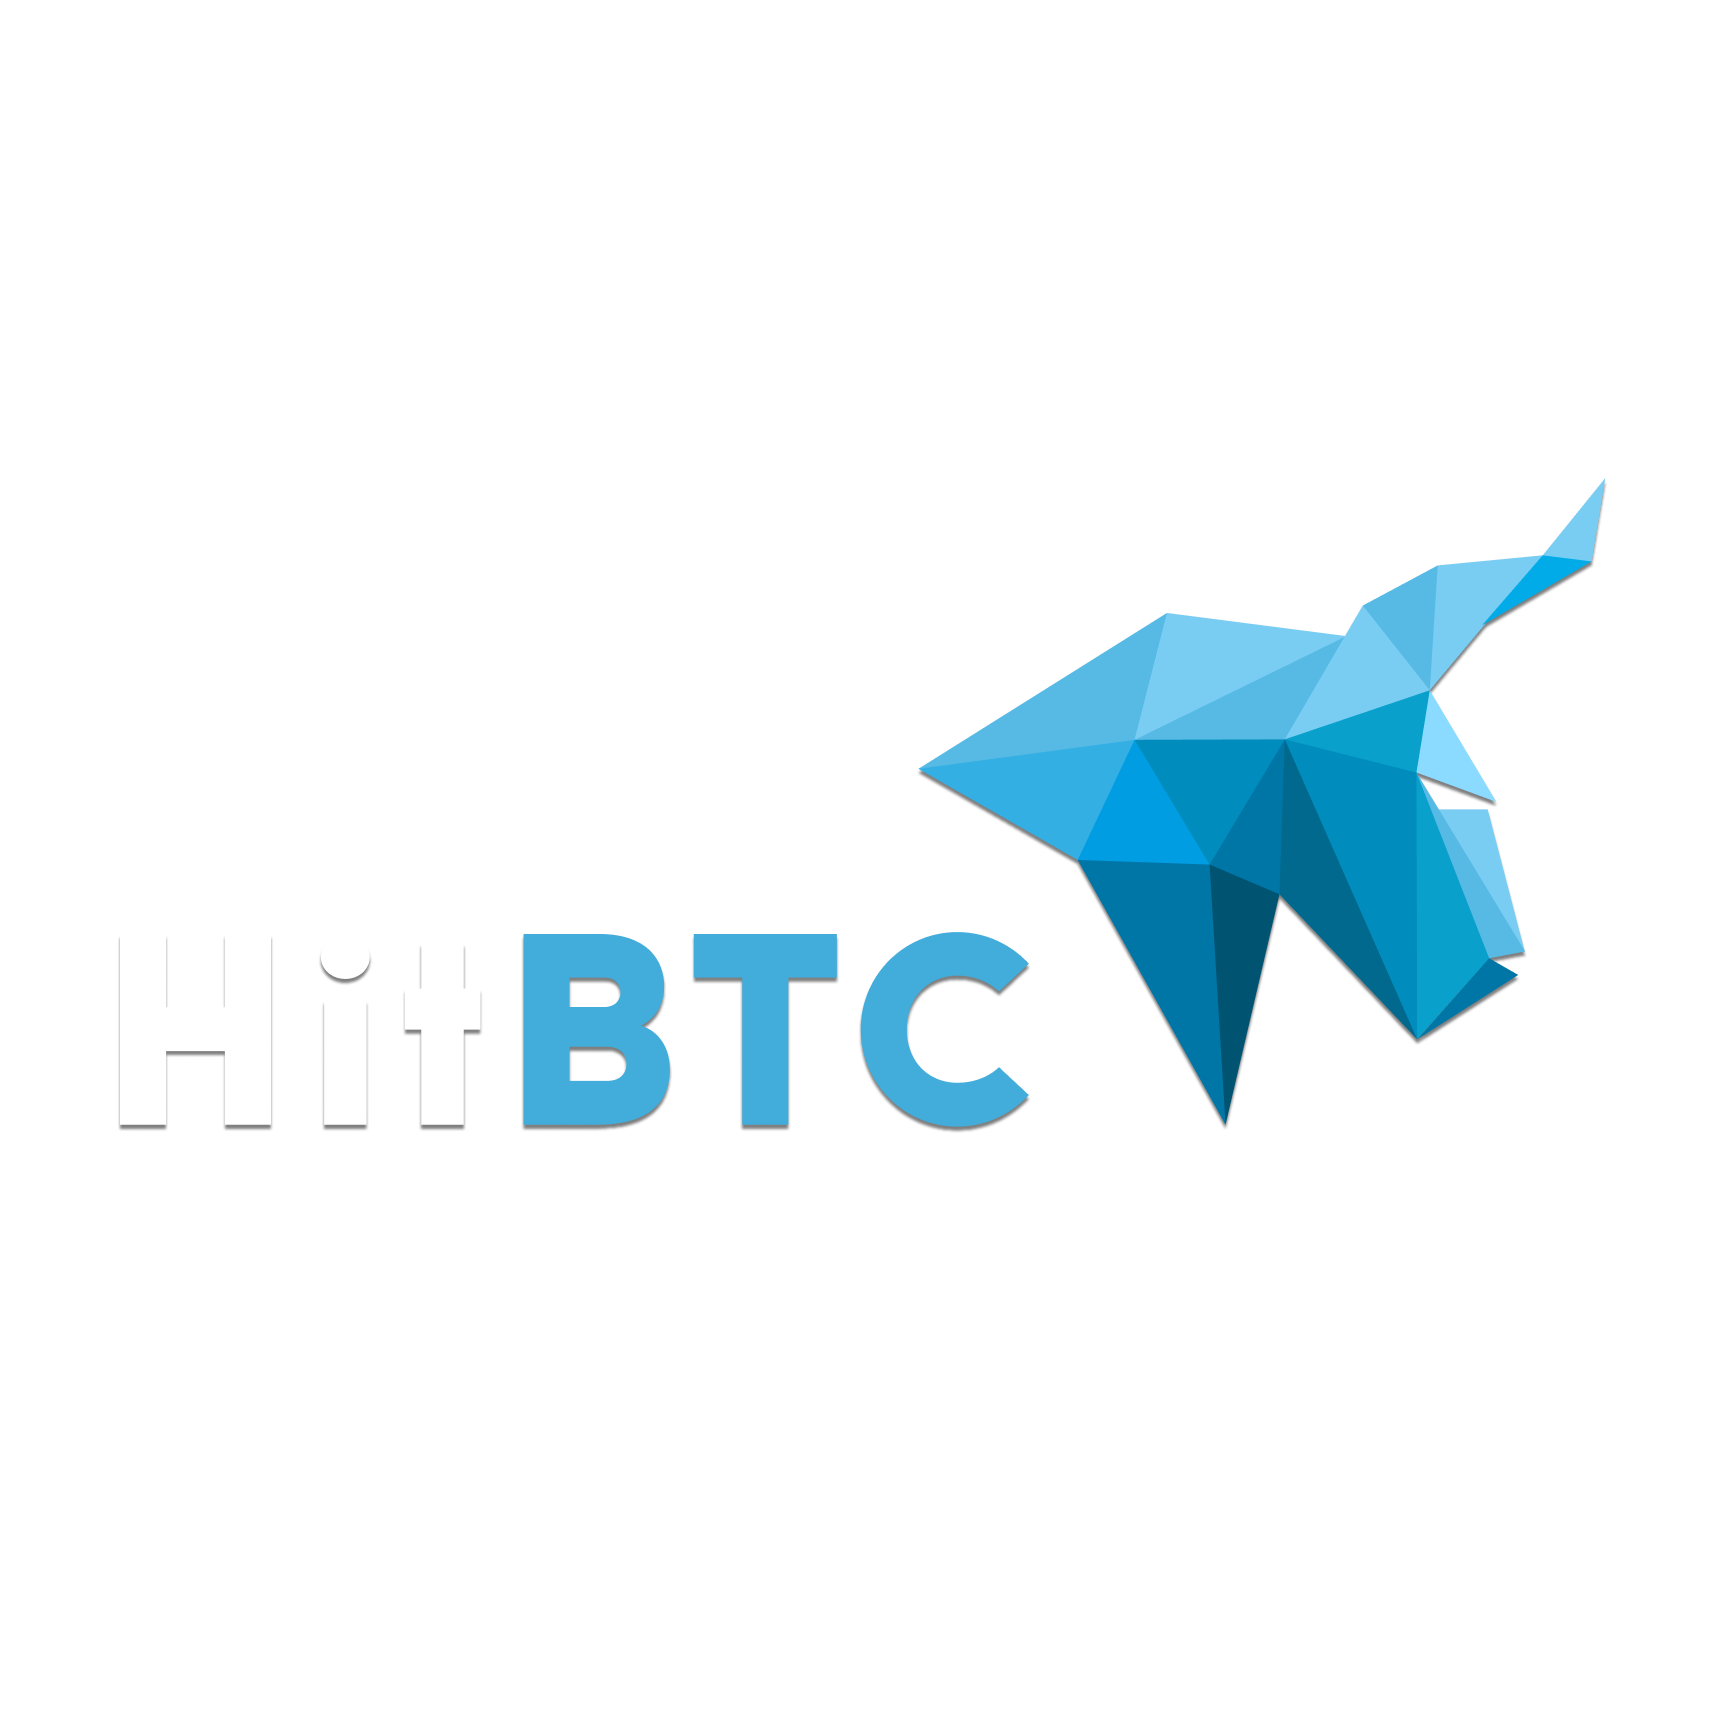 HitBTC logo on transparent